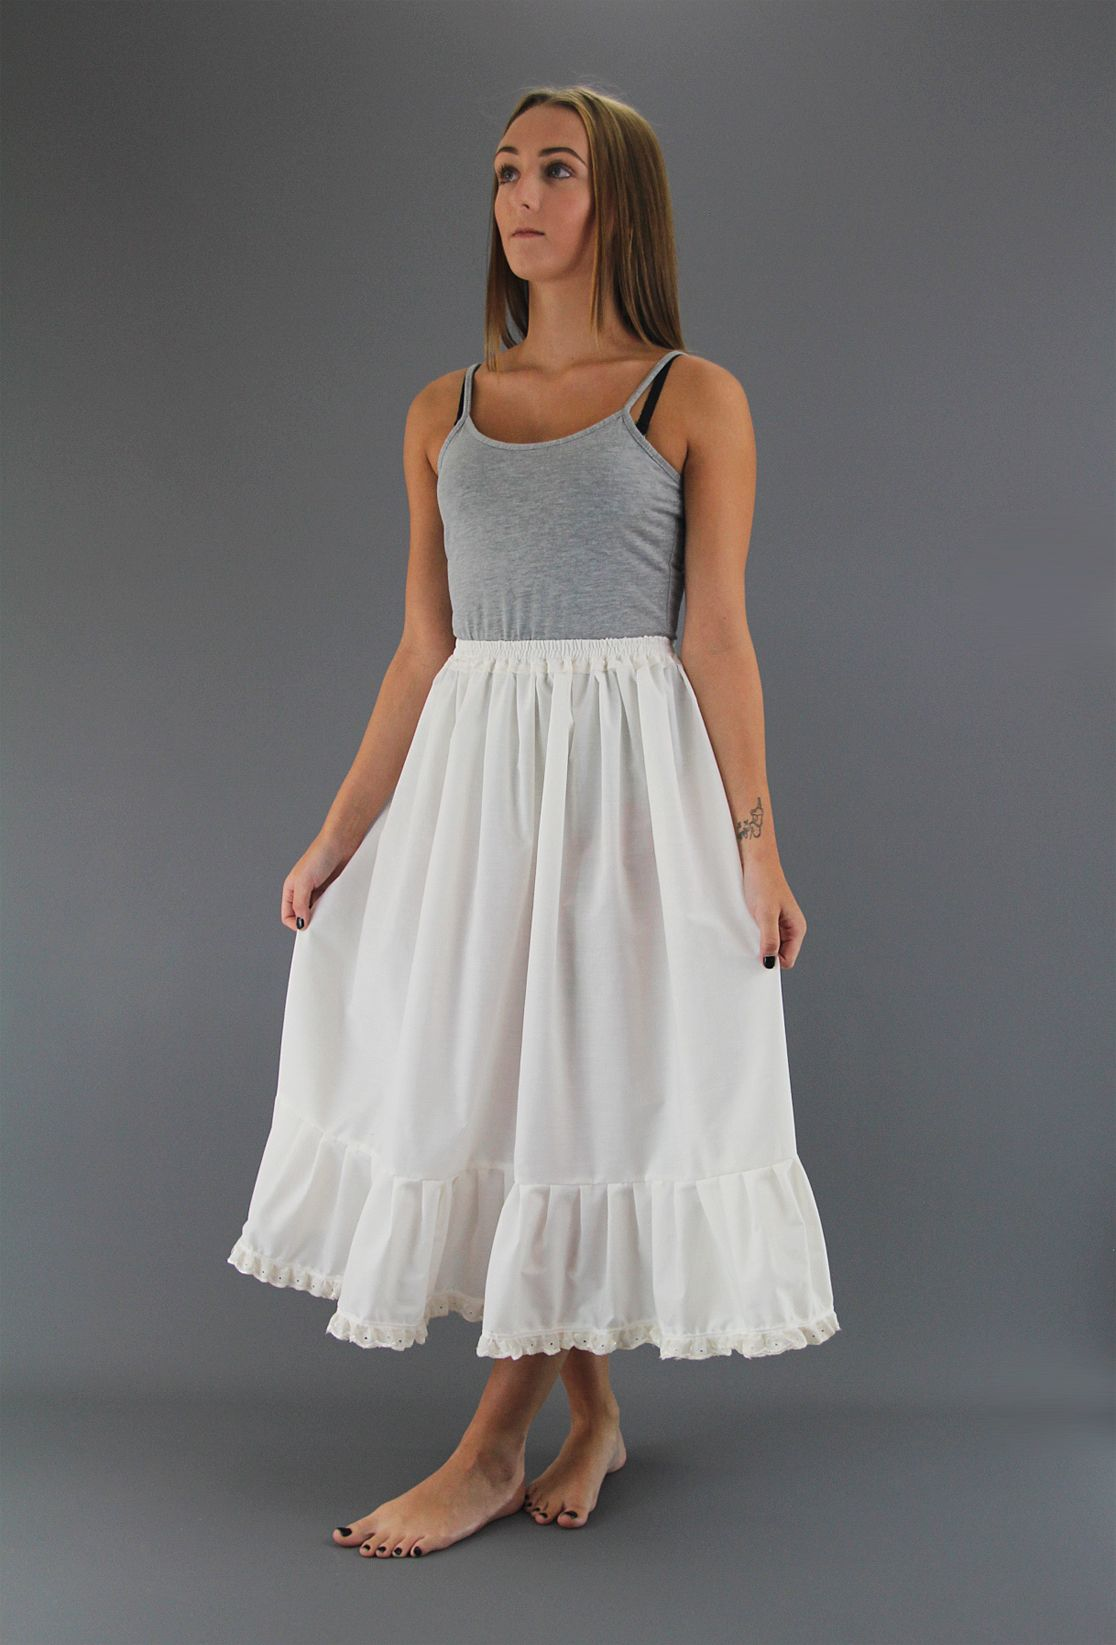 Cotton Petticoats